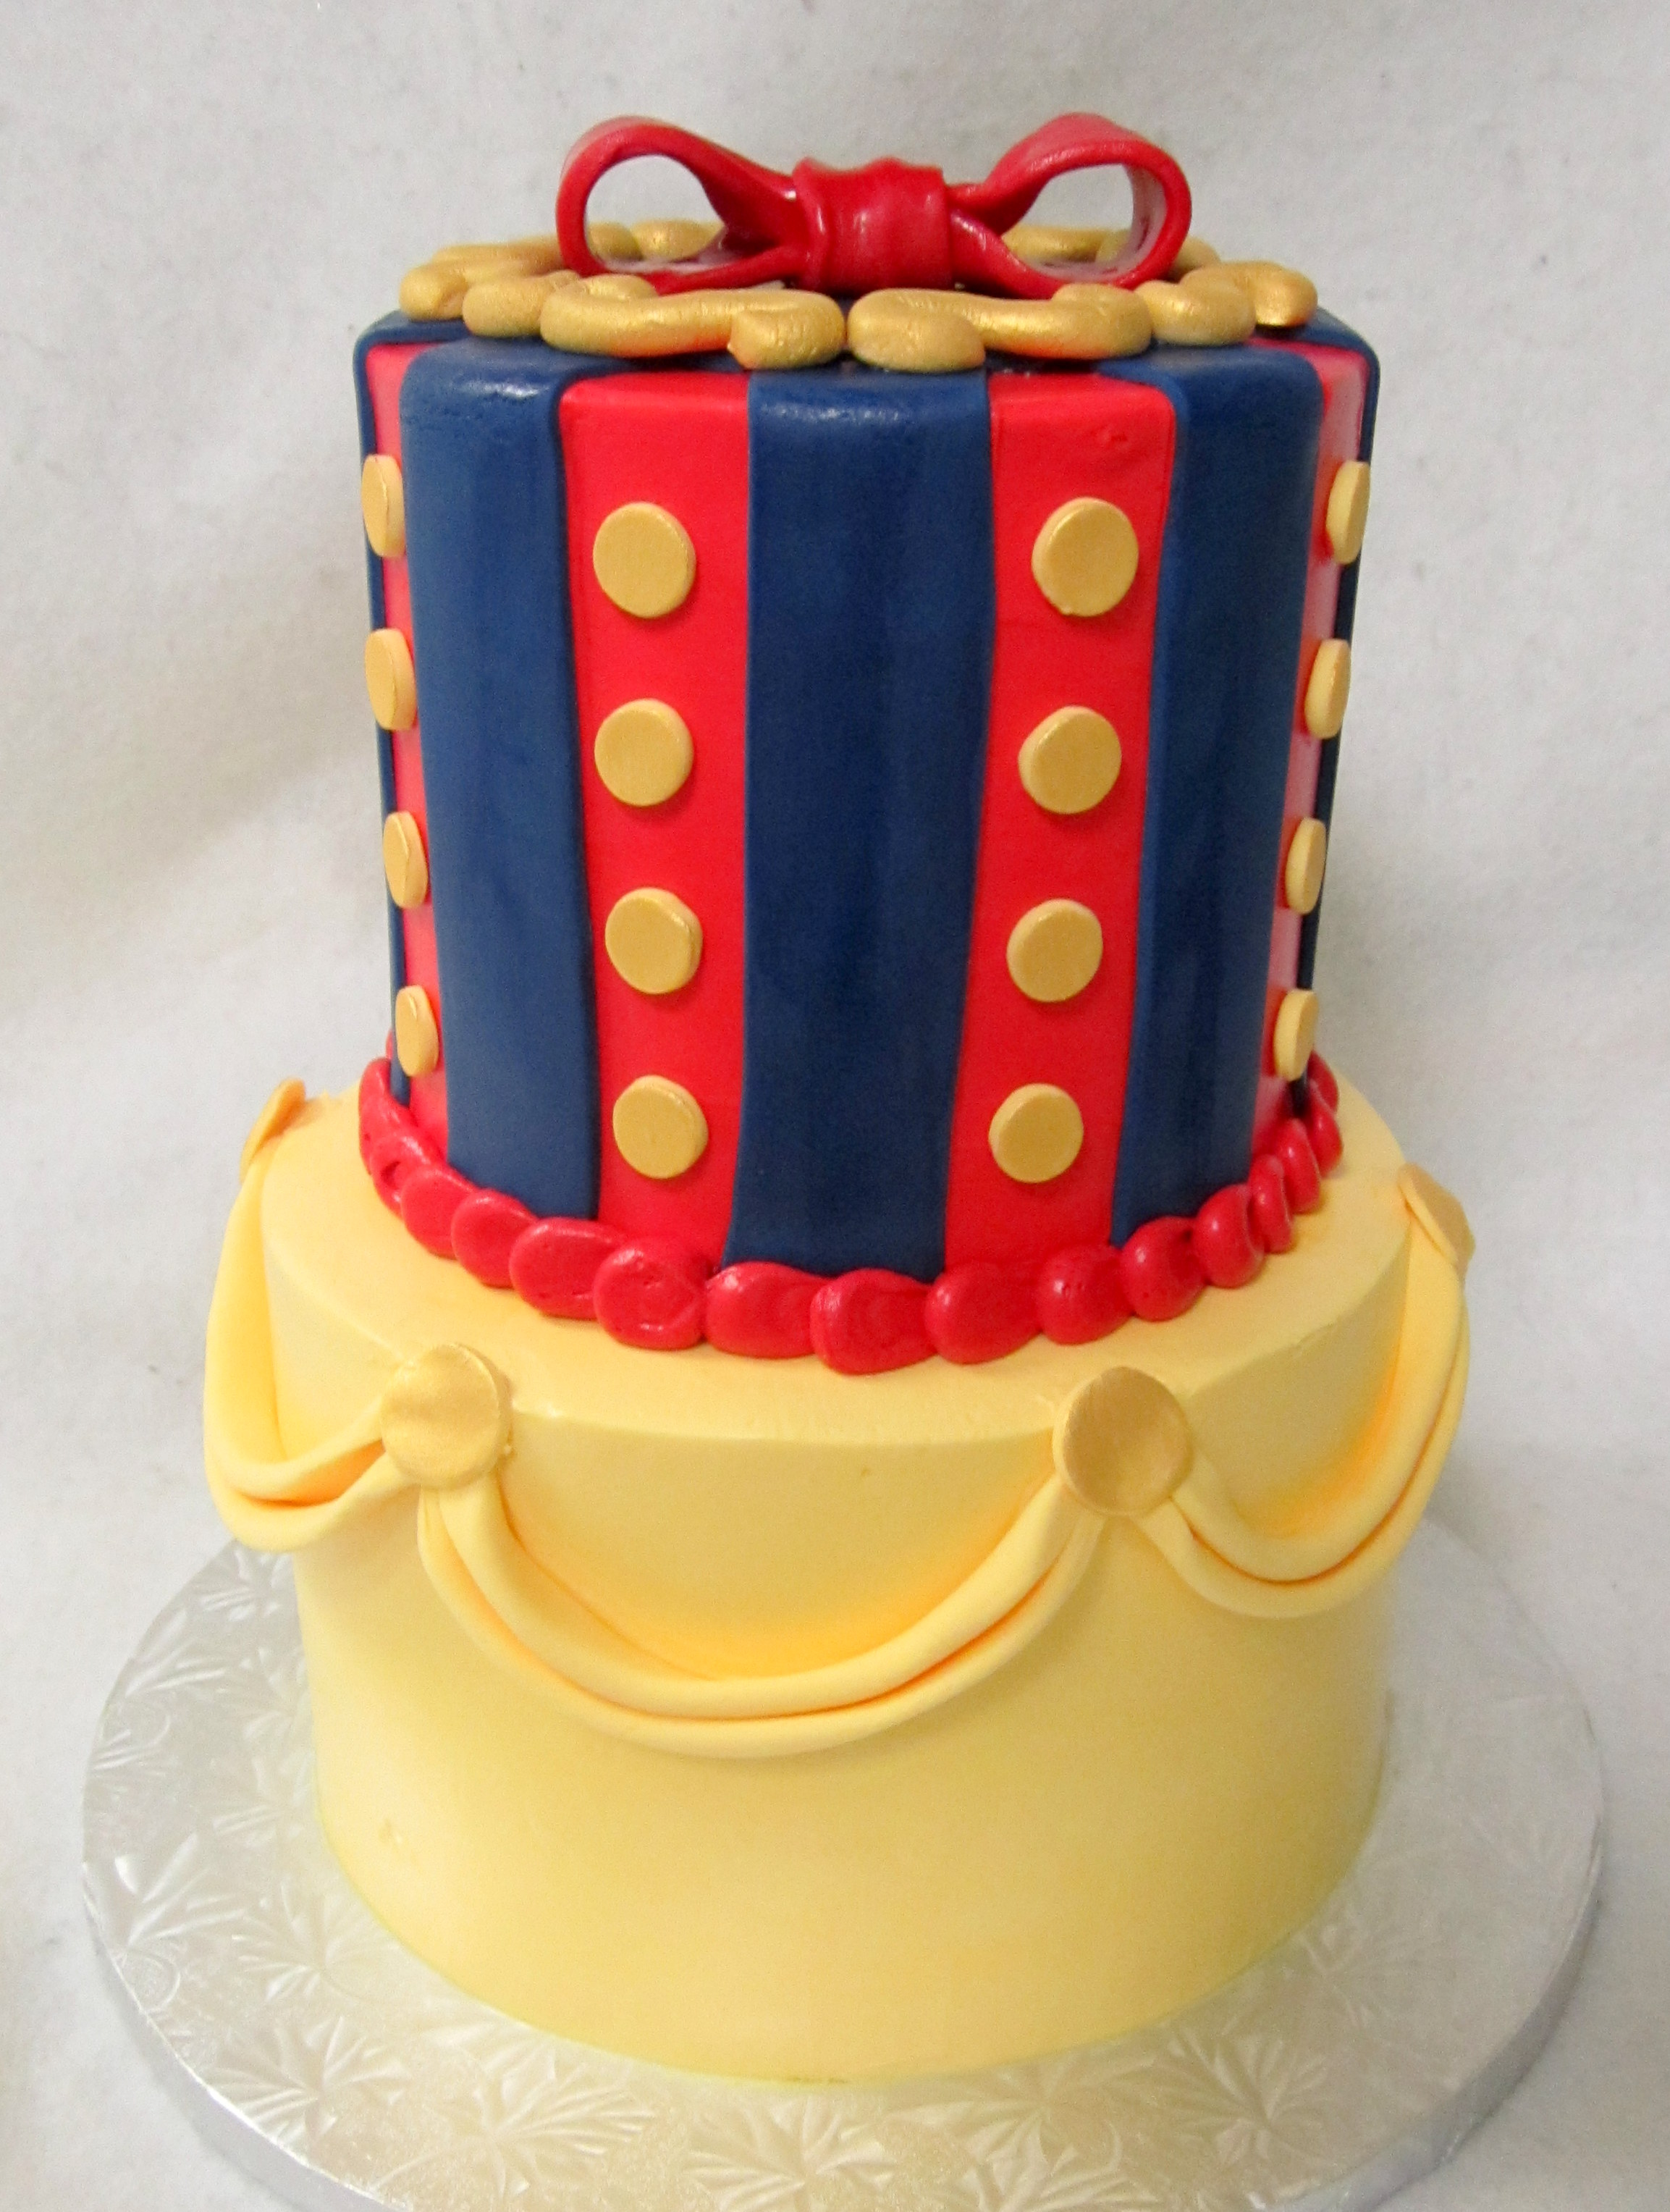 snow white cake-2 tier yellow.JPG